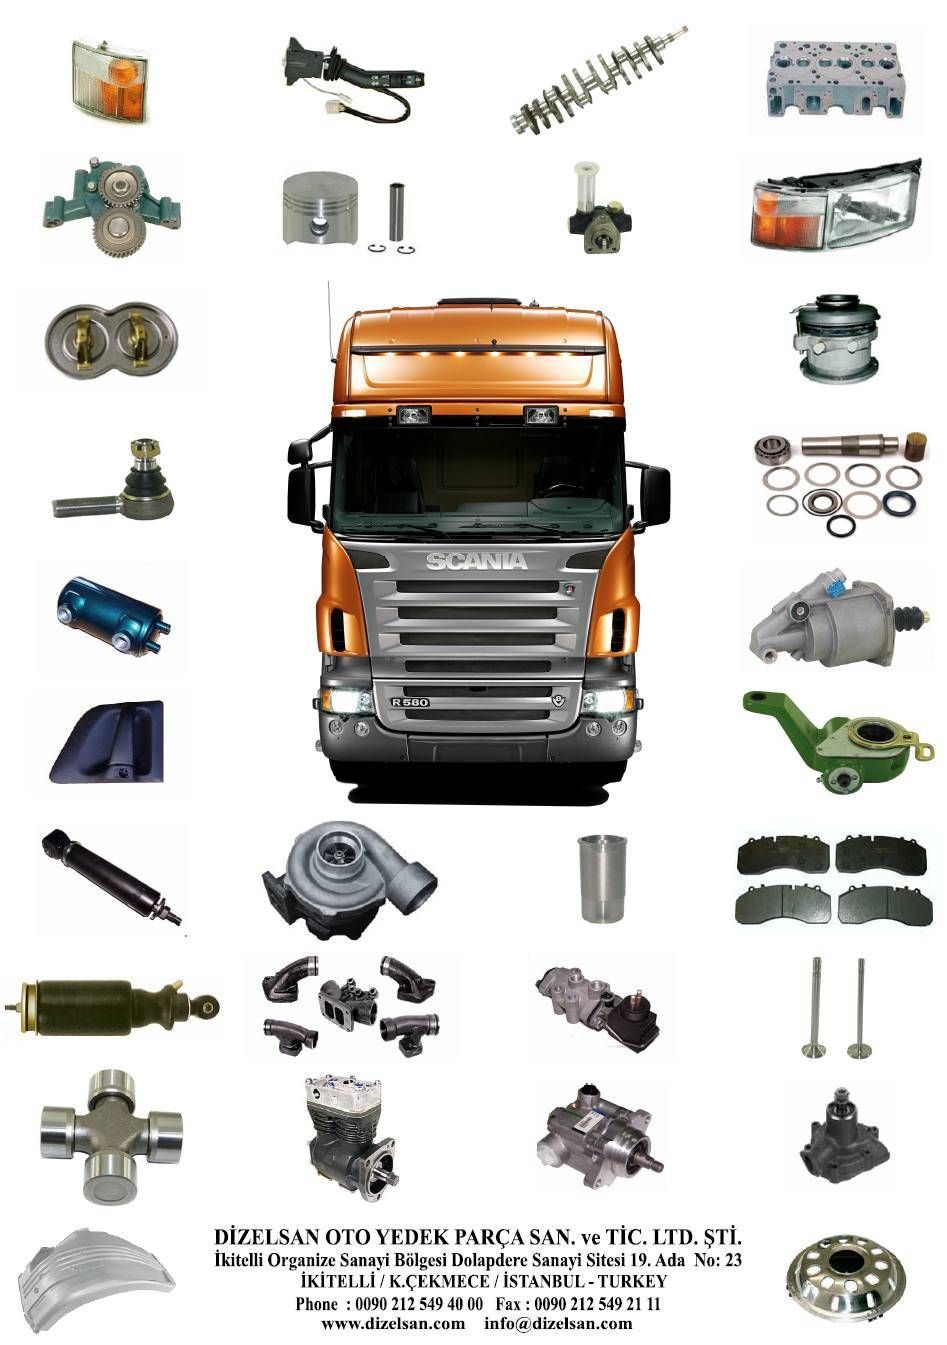 High Quality Turkish Made Spare Parts For Scania Trucks ...